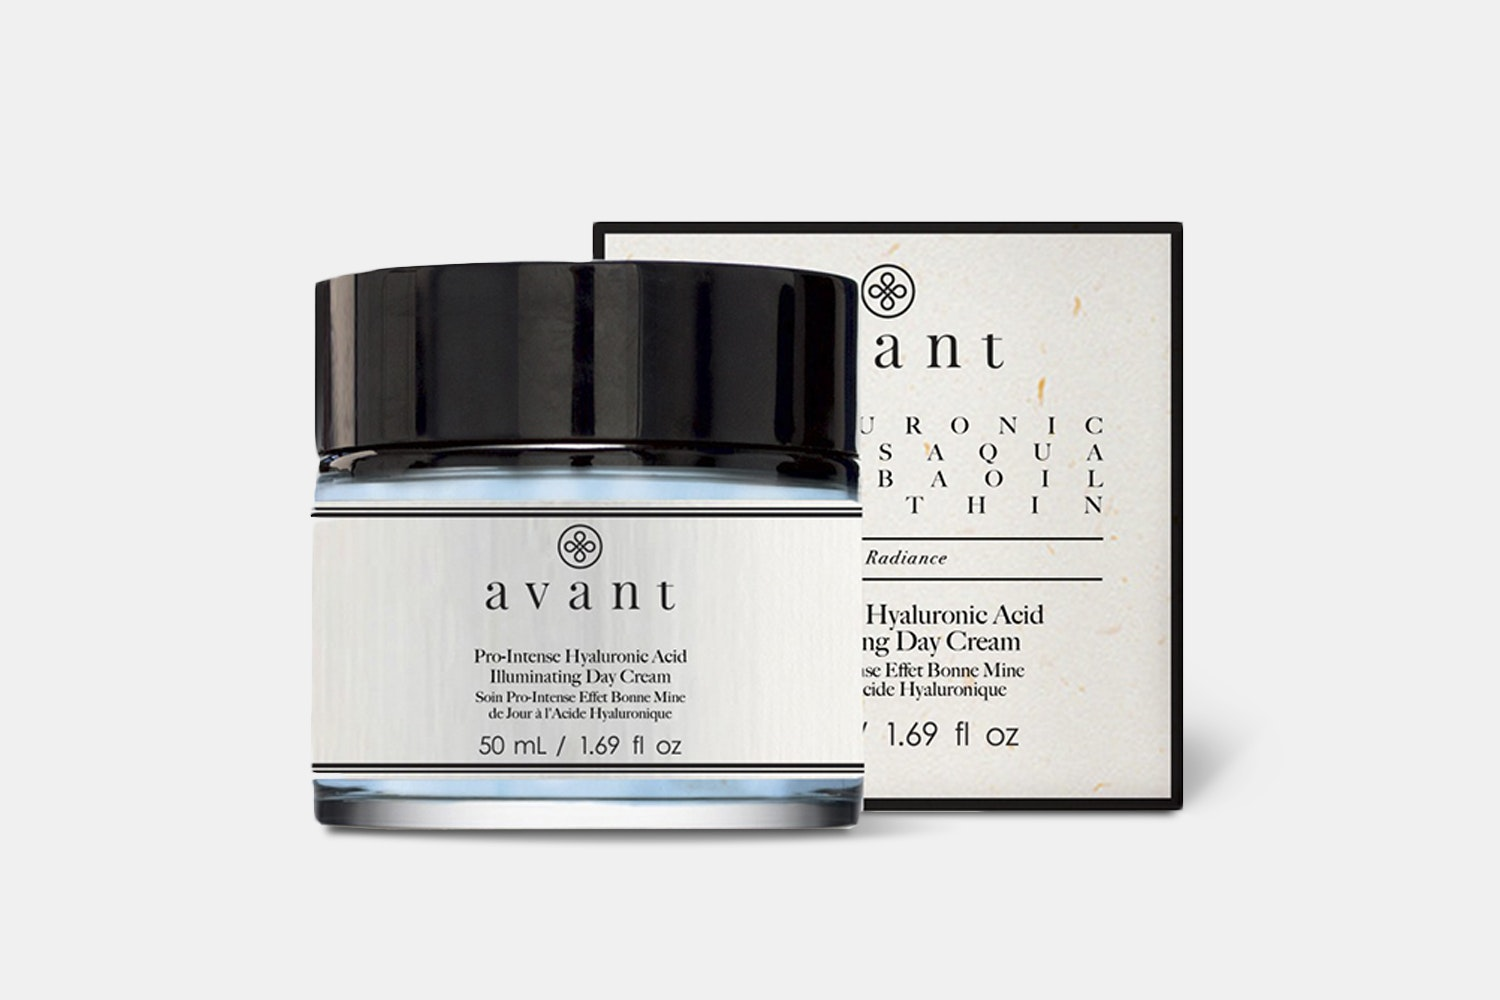 Avant Skincare Pro-Intense Illuminating Day Cream